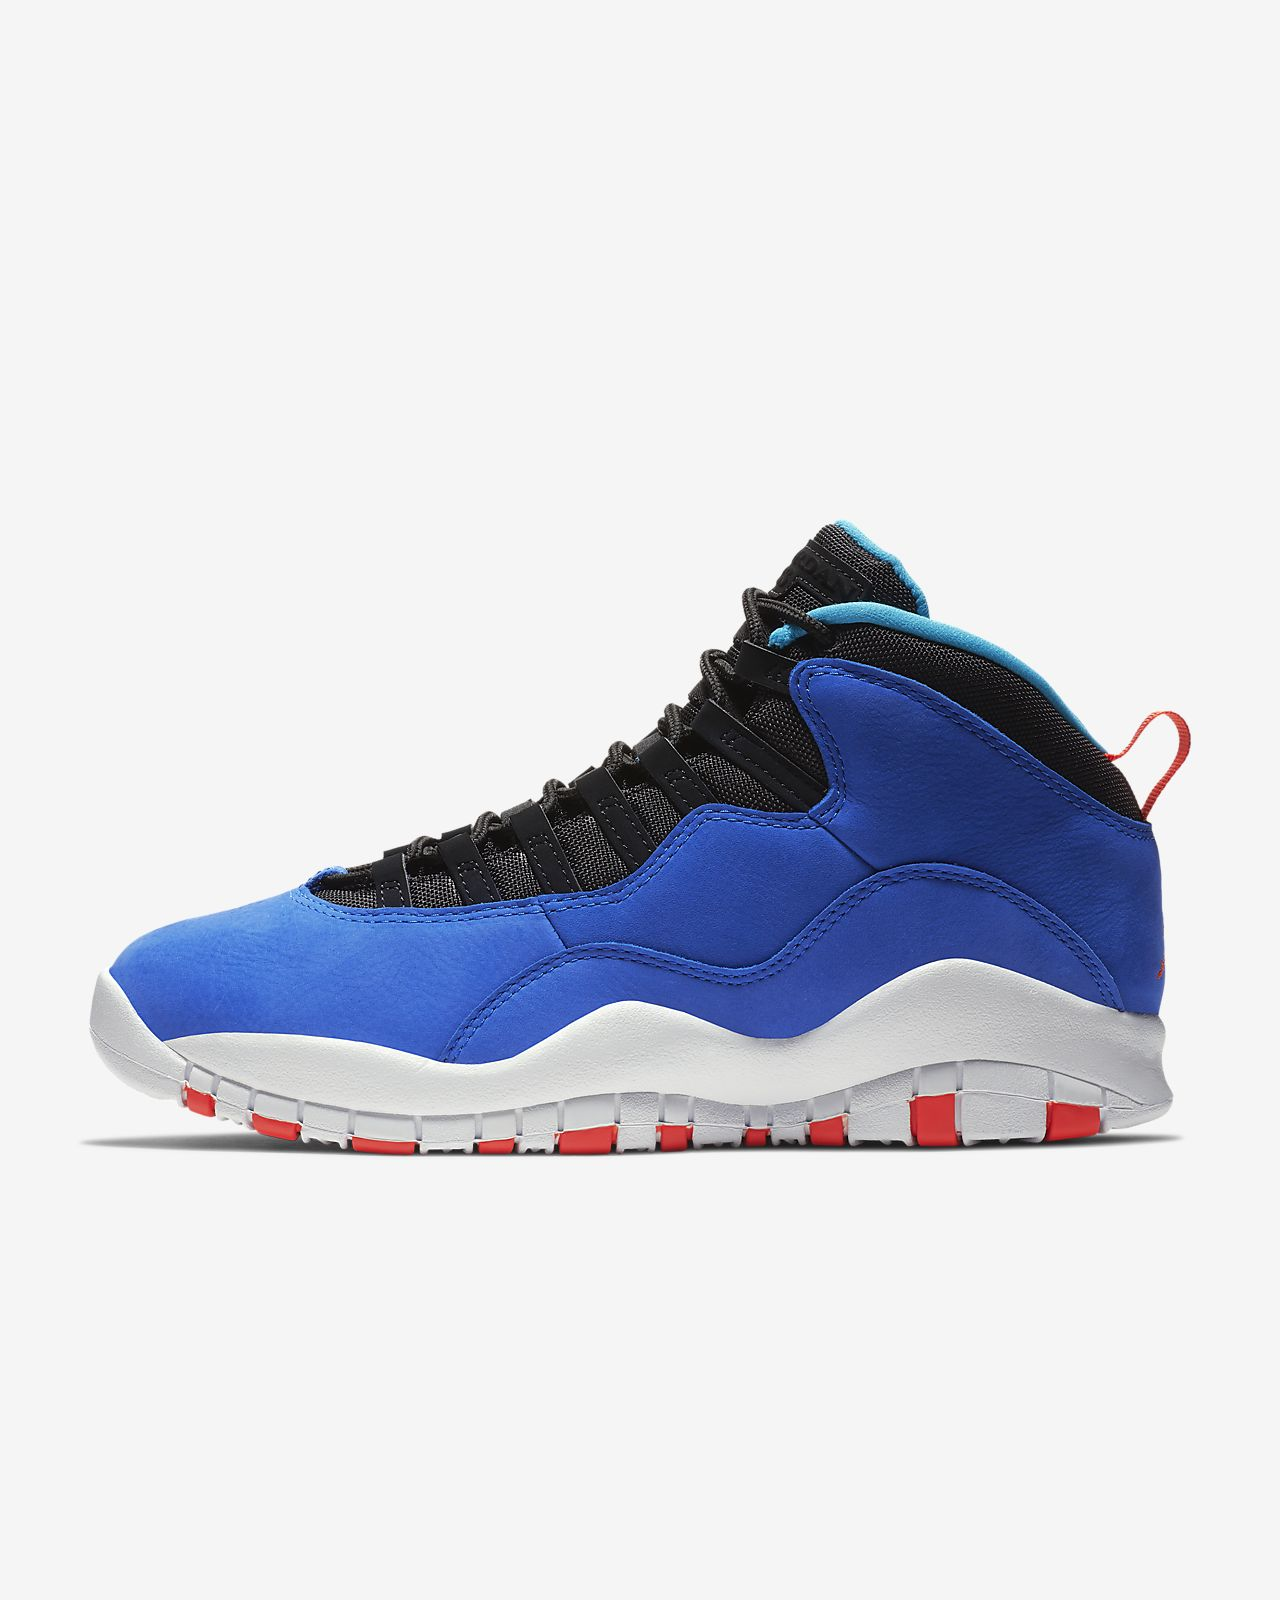 separation shoes d541e b6fe3 ... Calzado para hombre Air Jordan 10 Retro